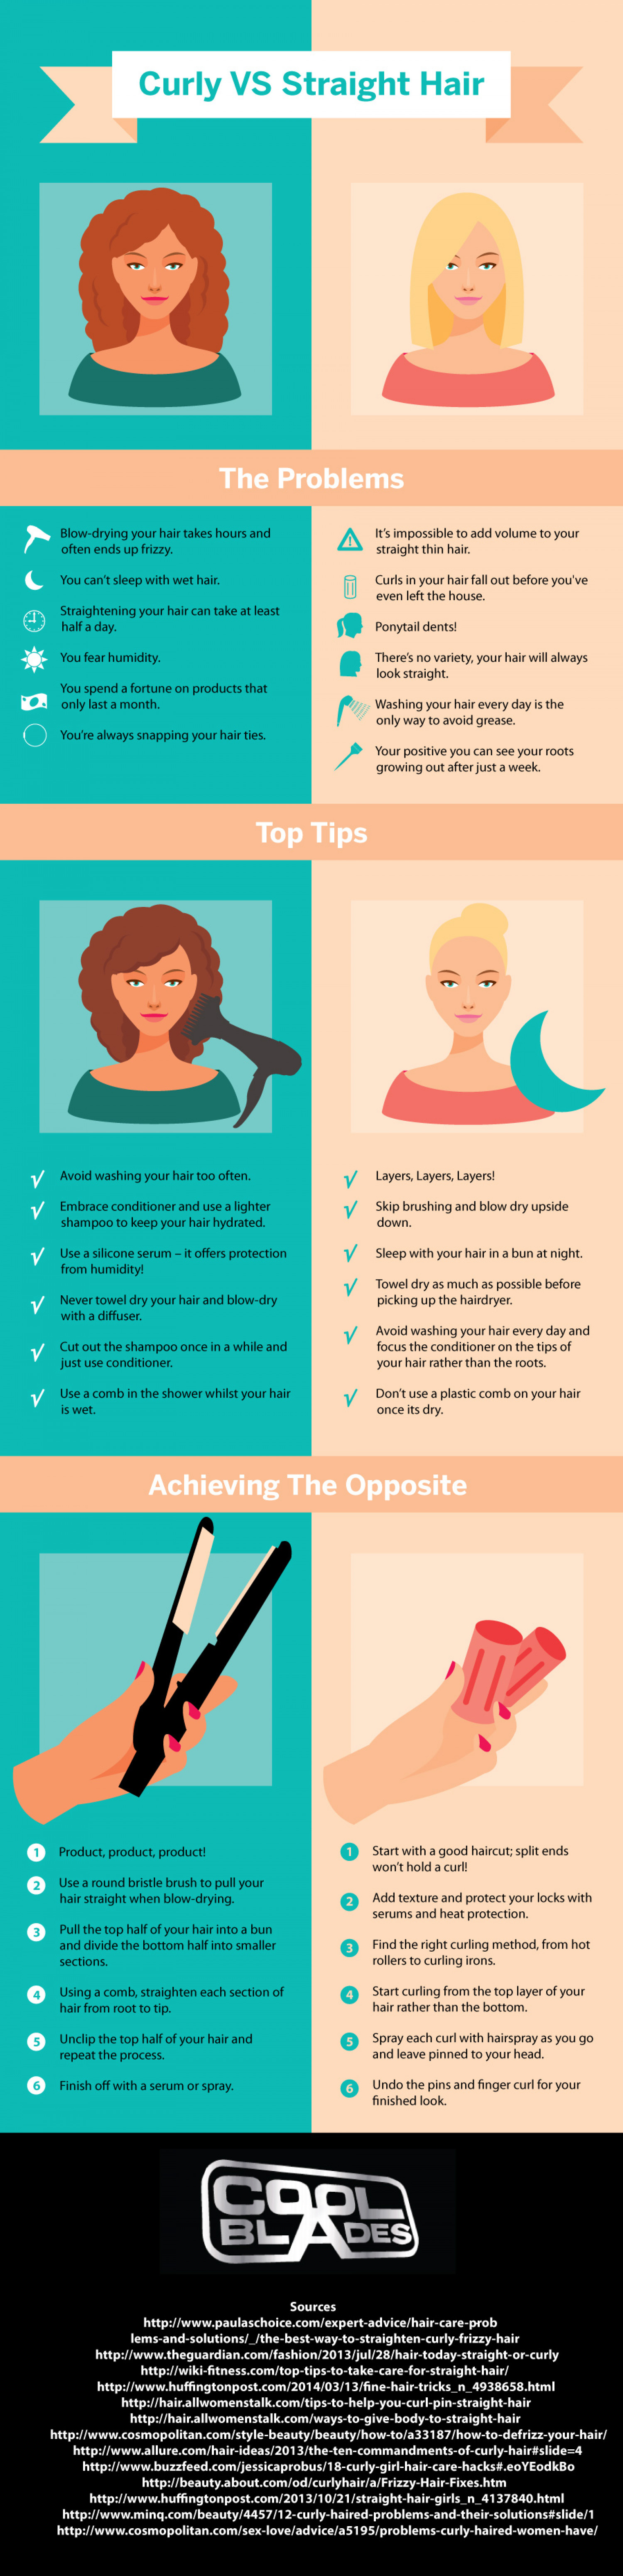 Curly VS Straight Hair Infographic